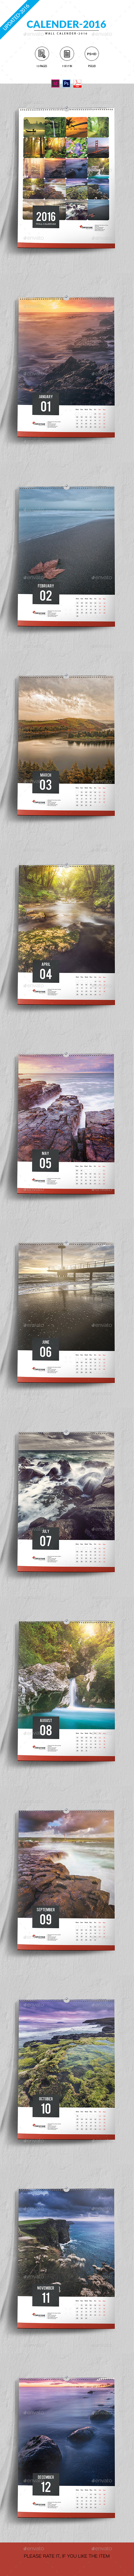 Wall Calendar 2016 - Calendars Stationery